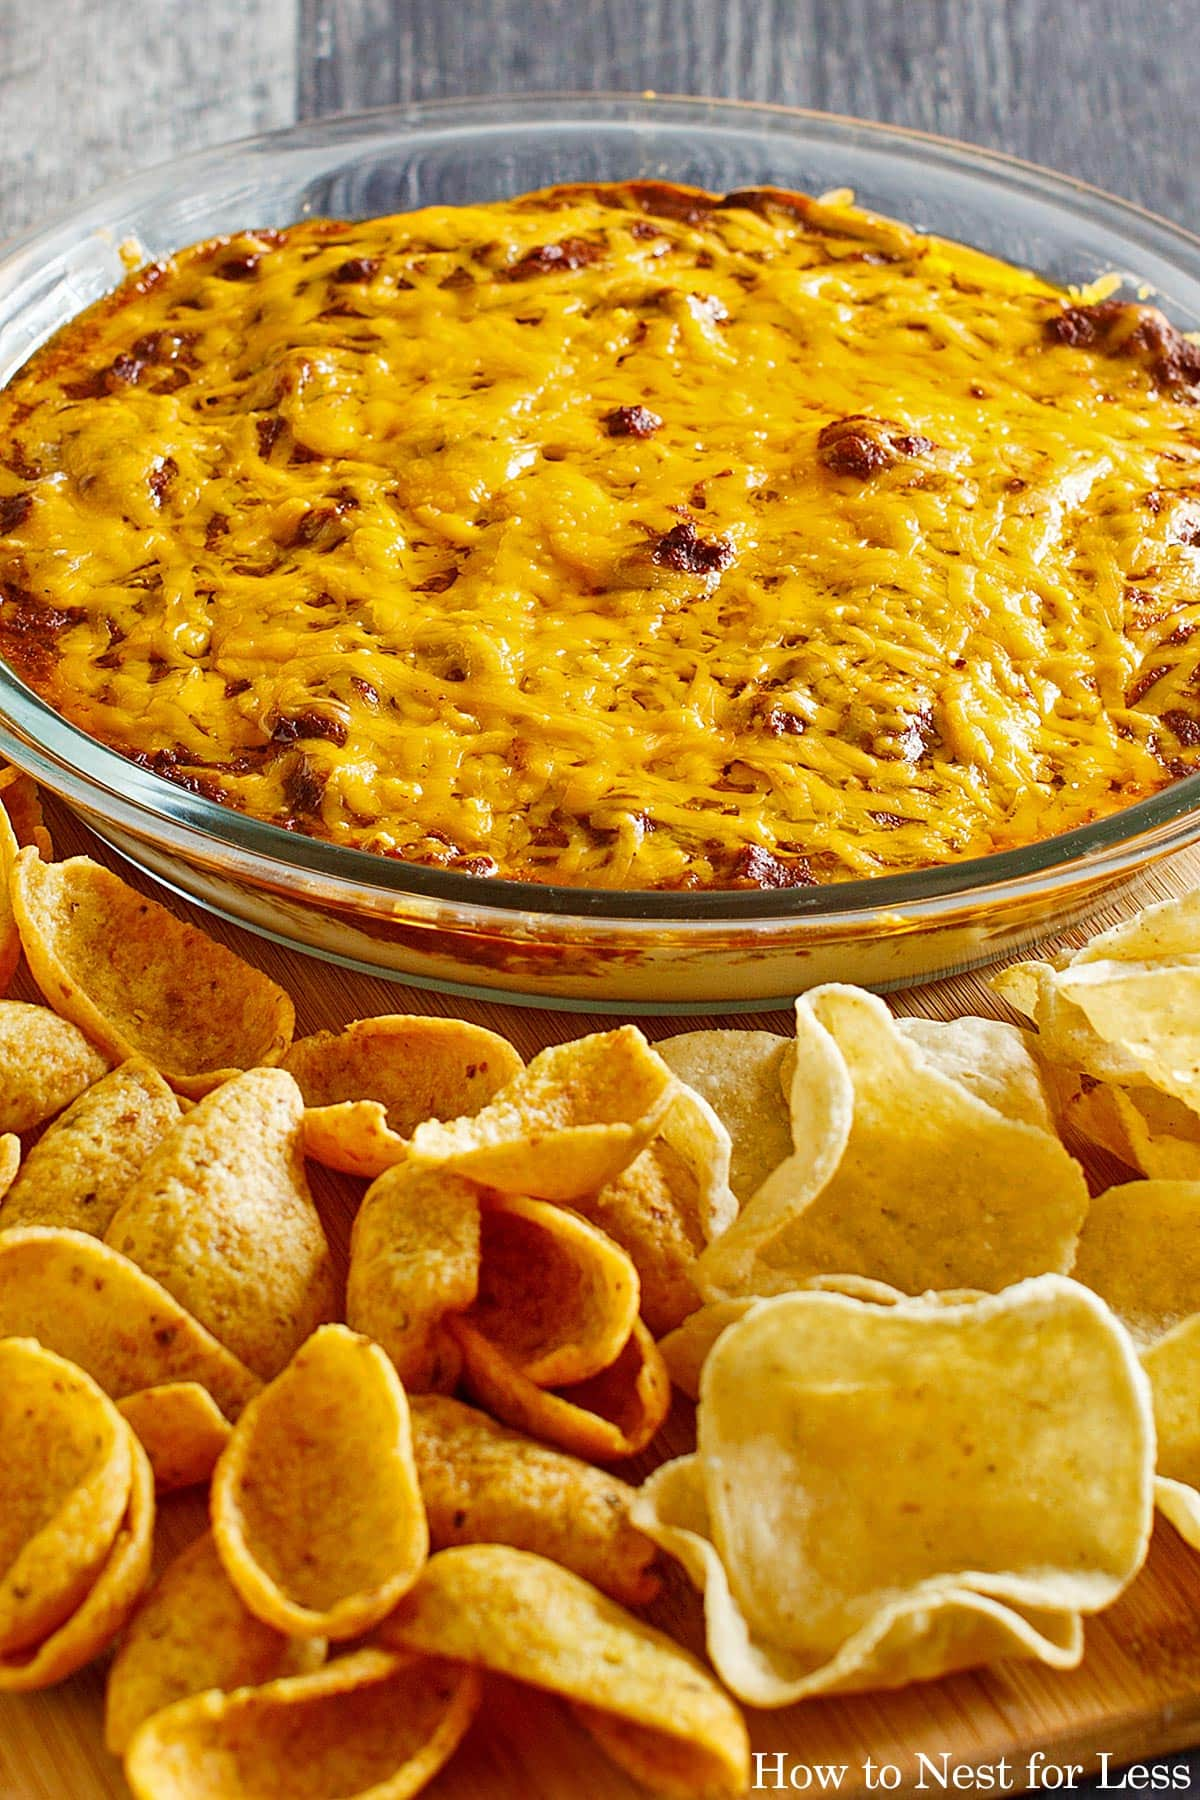 The baked chili dip on counter with chips.